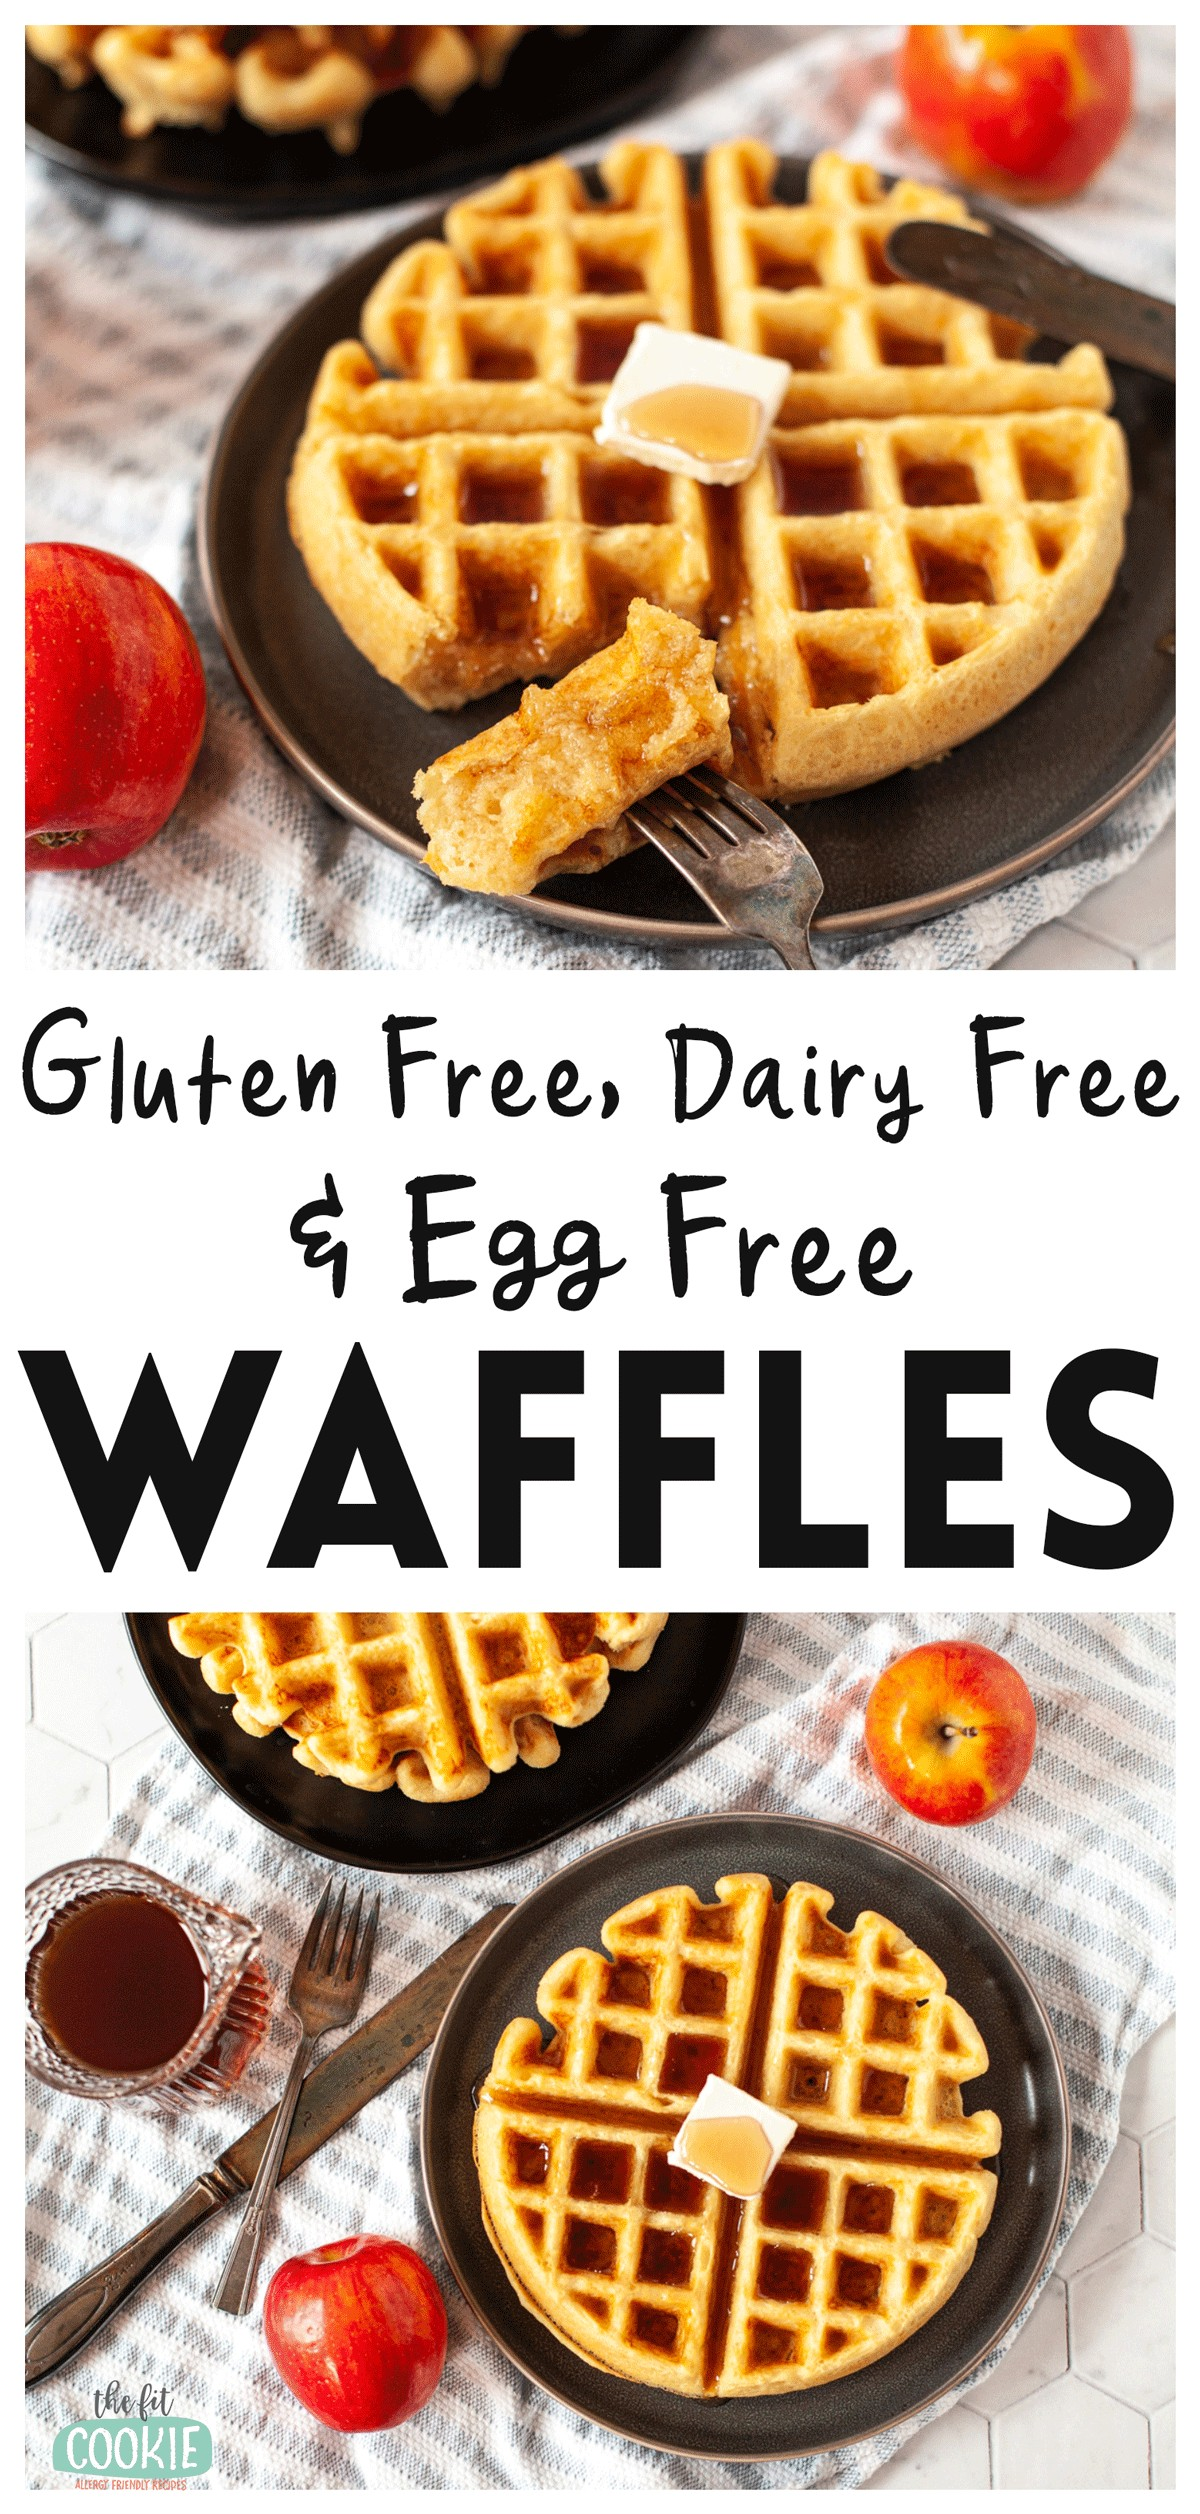 photo collage of gluten free waffles on a black plate